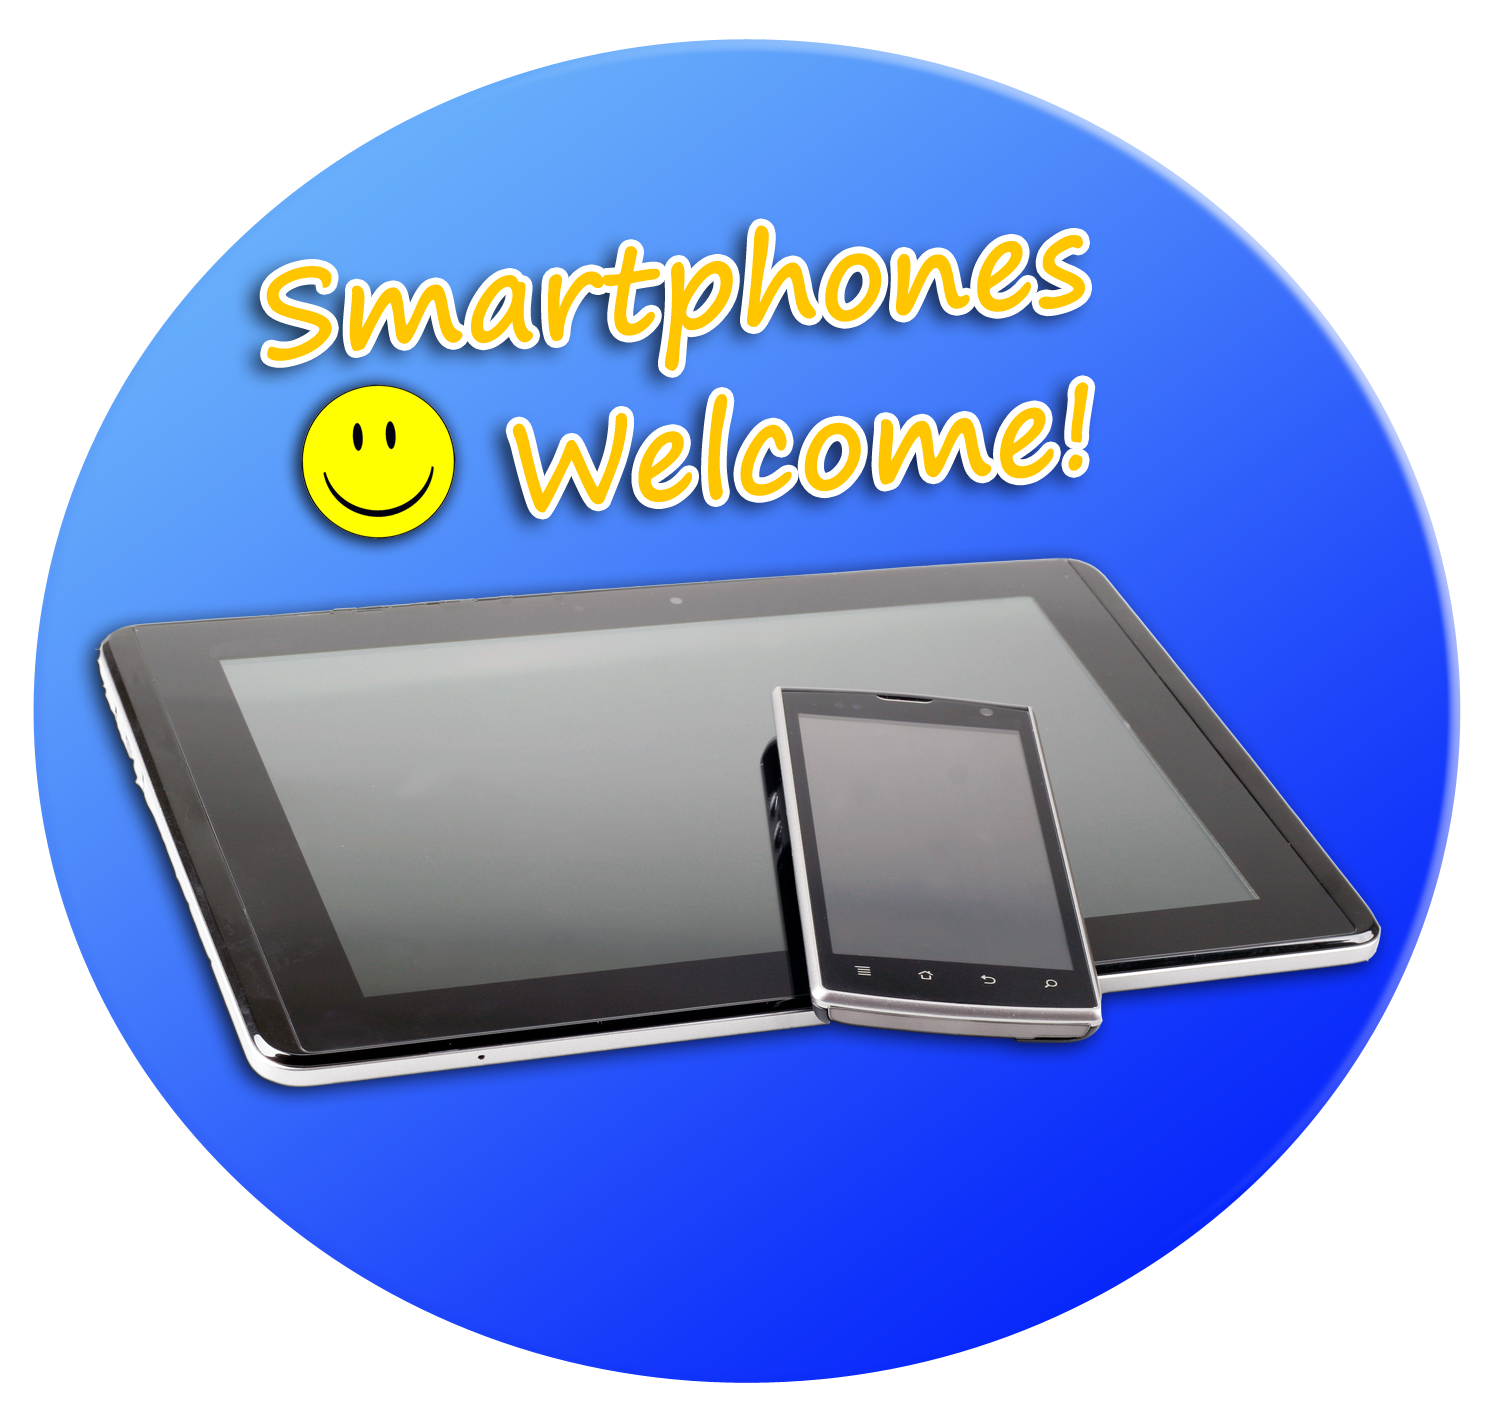 Smartphones welcome!